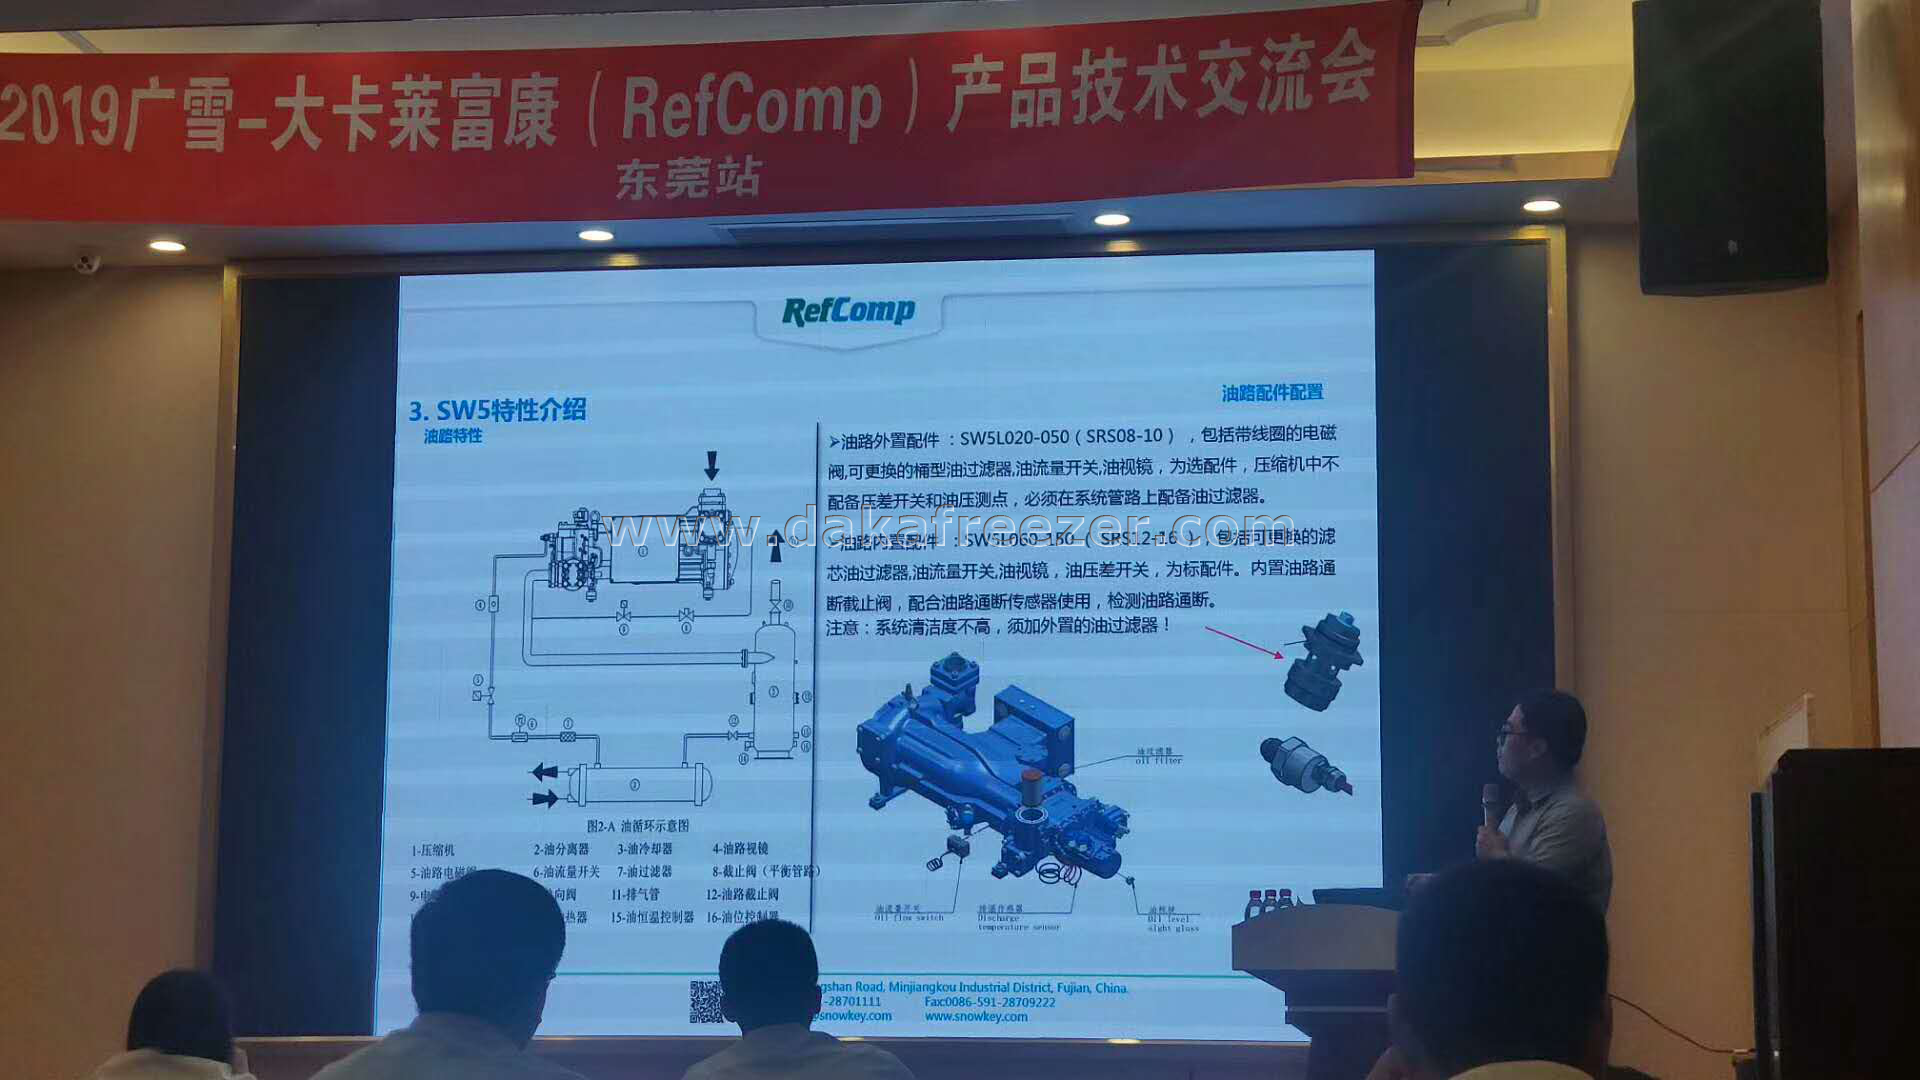 2019 Guangxue-Daka- RefComp compressor Product Technology Exchange Conference - Conference Report